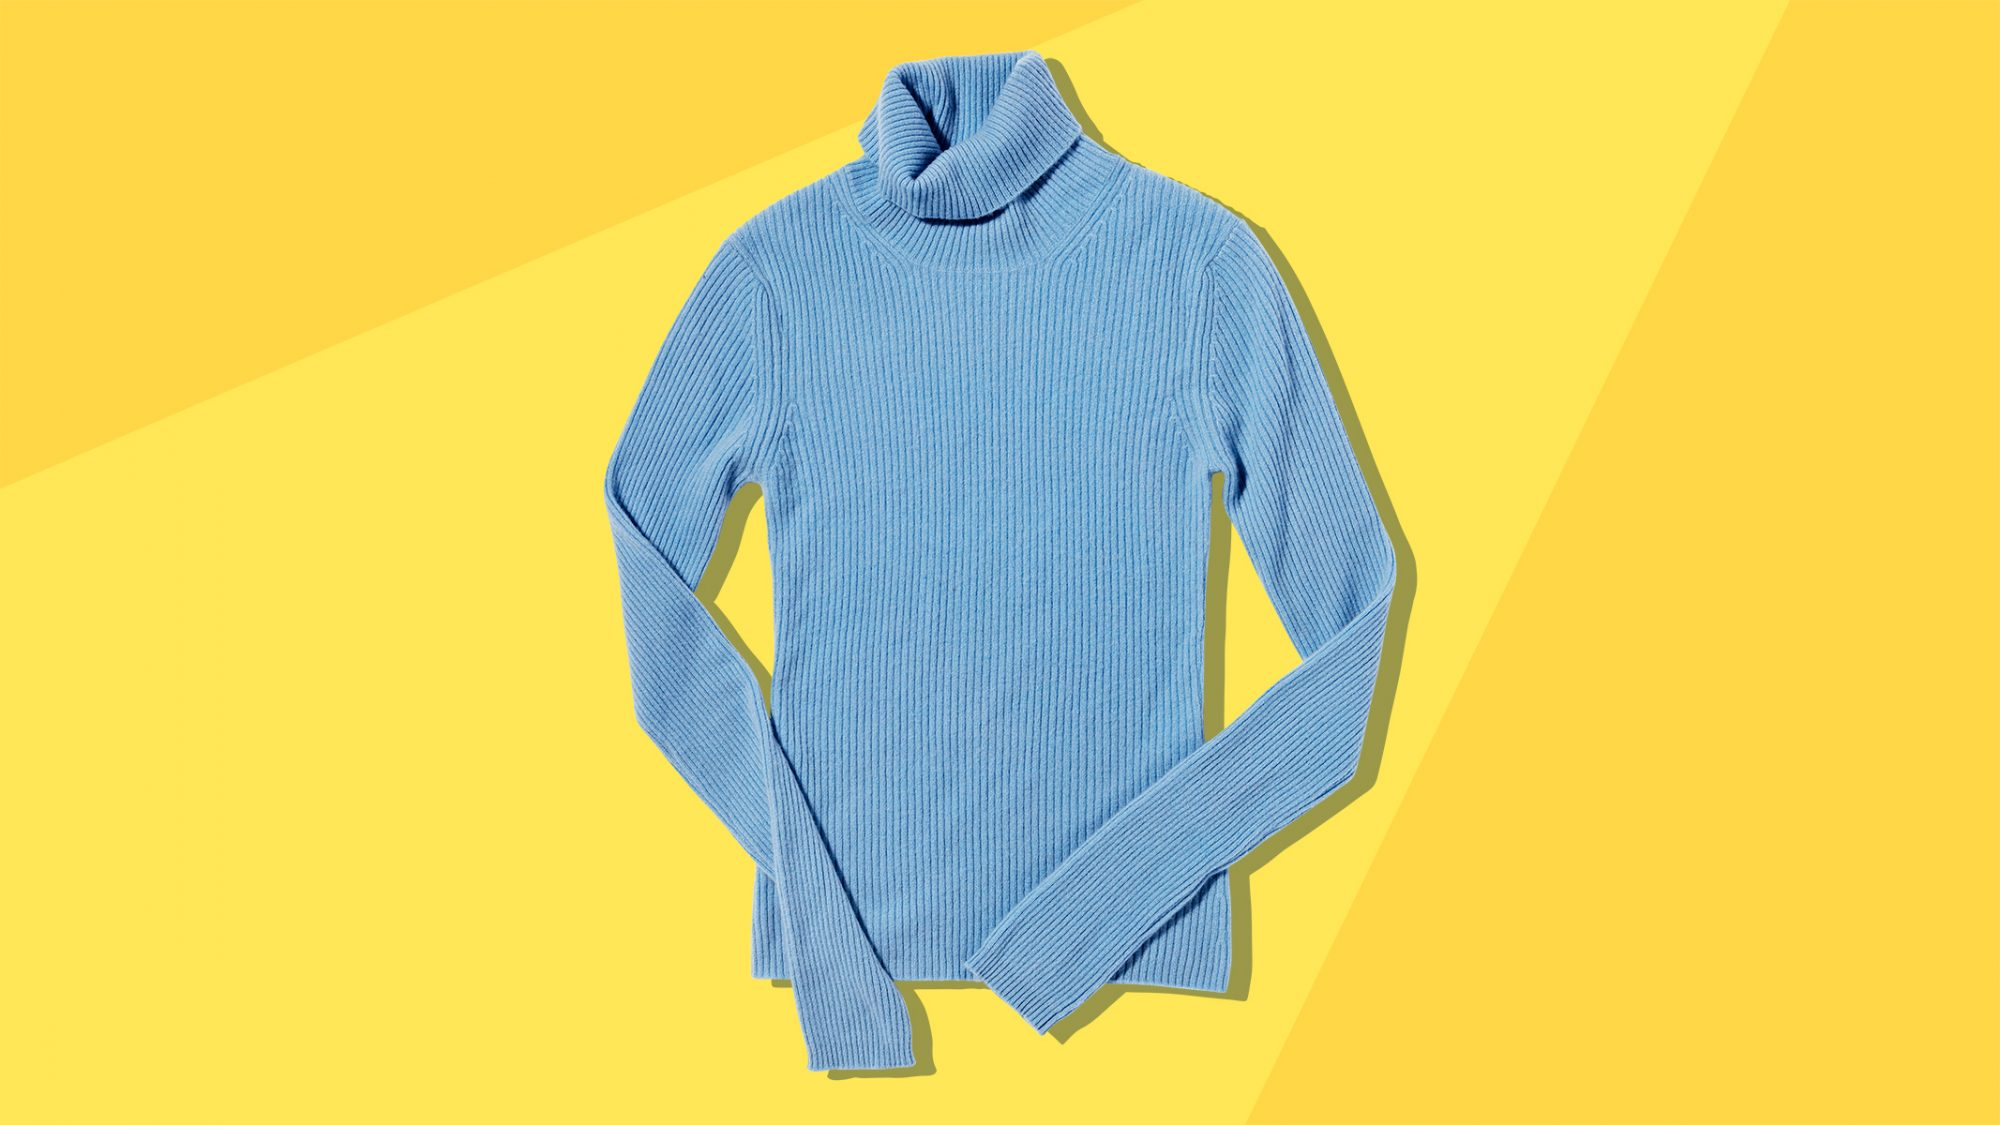 blue cashmere sweater on yellow background: how to care for cashmere